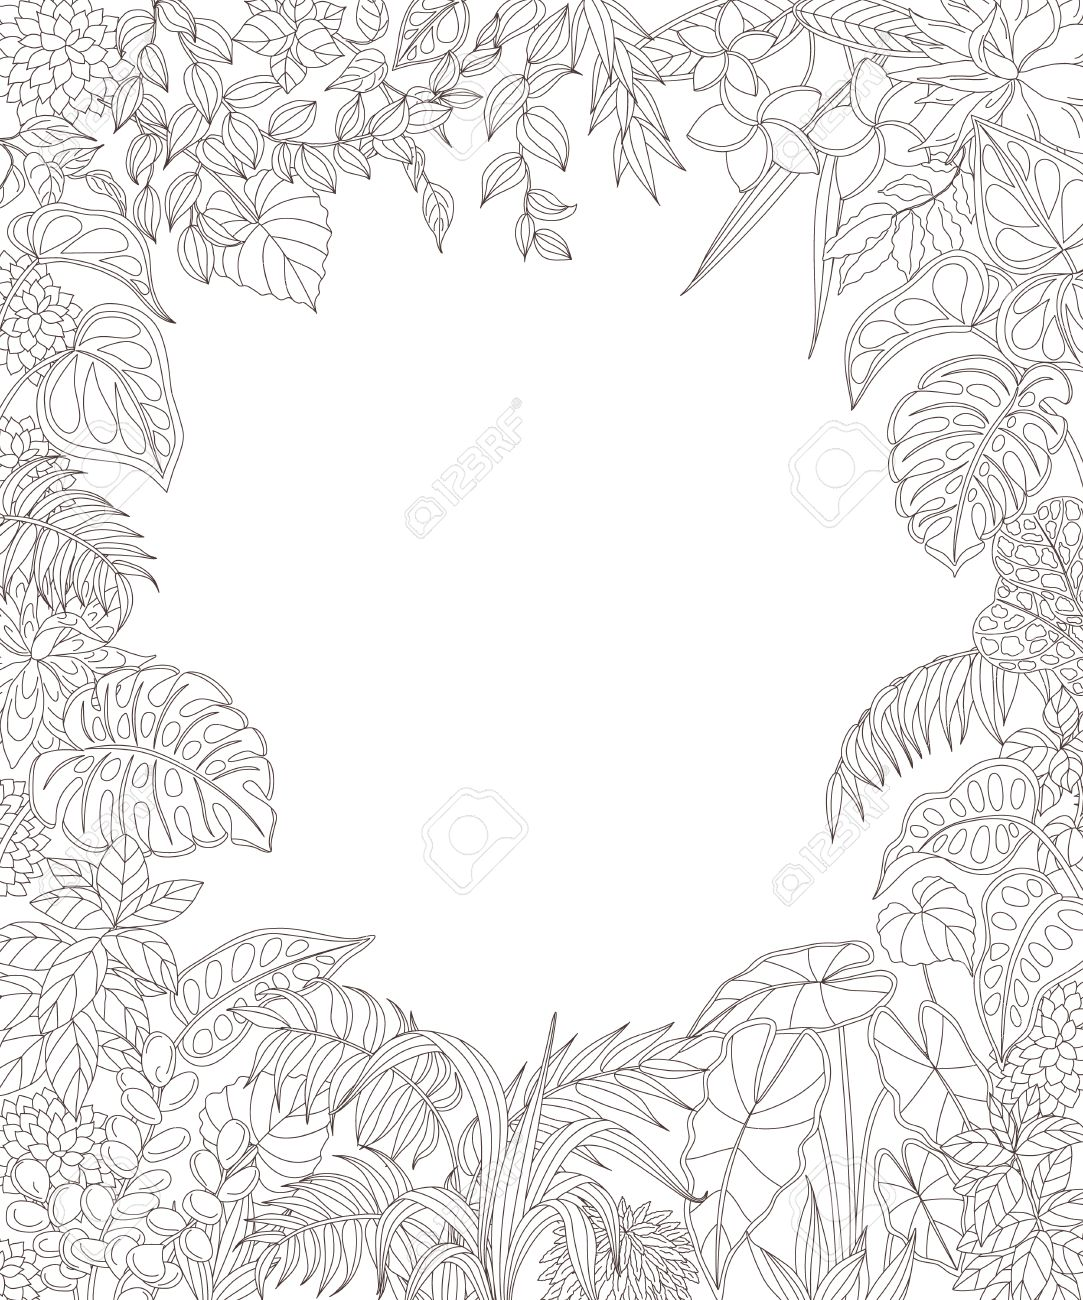 Contoured Leaves And Flowers On White Background Floral Rectangle